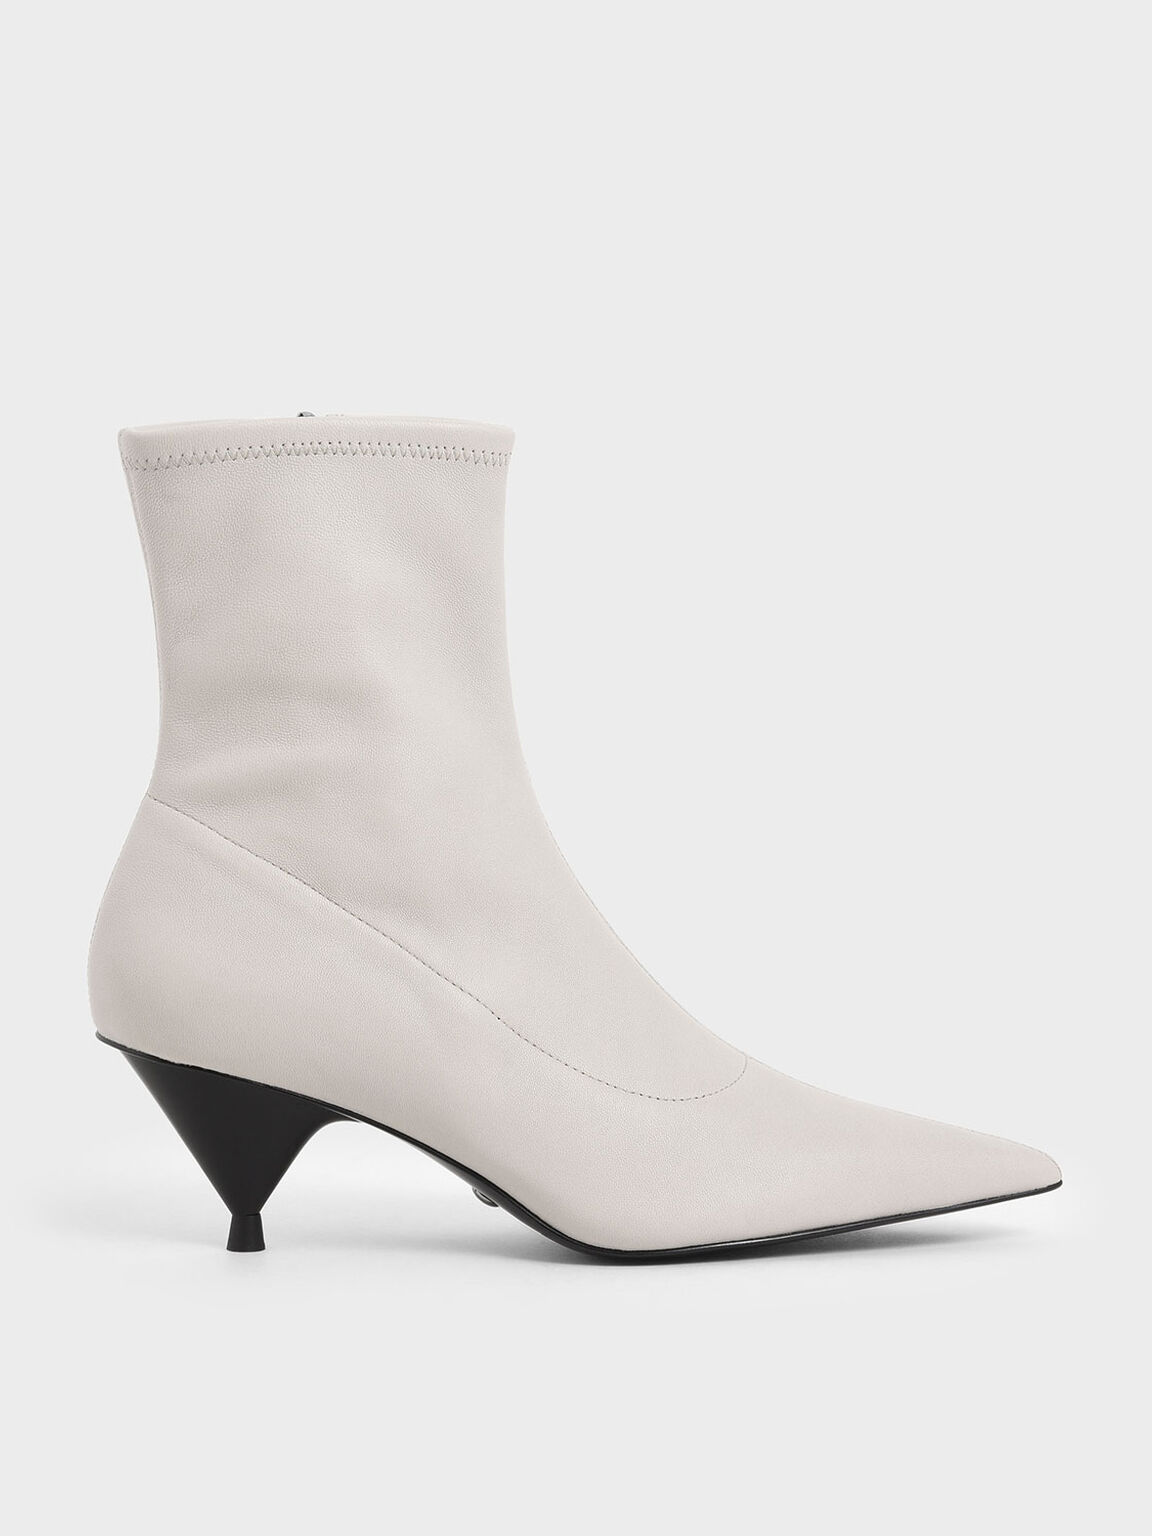 Leather Cone Heel Ankle Boots, White, hi-res